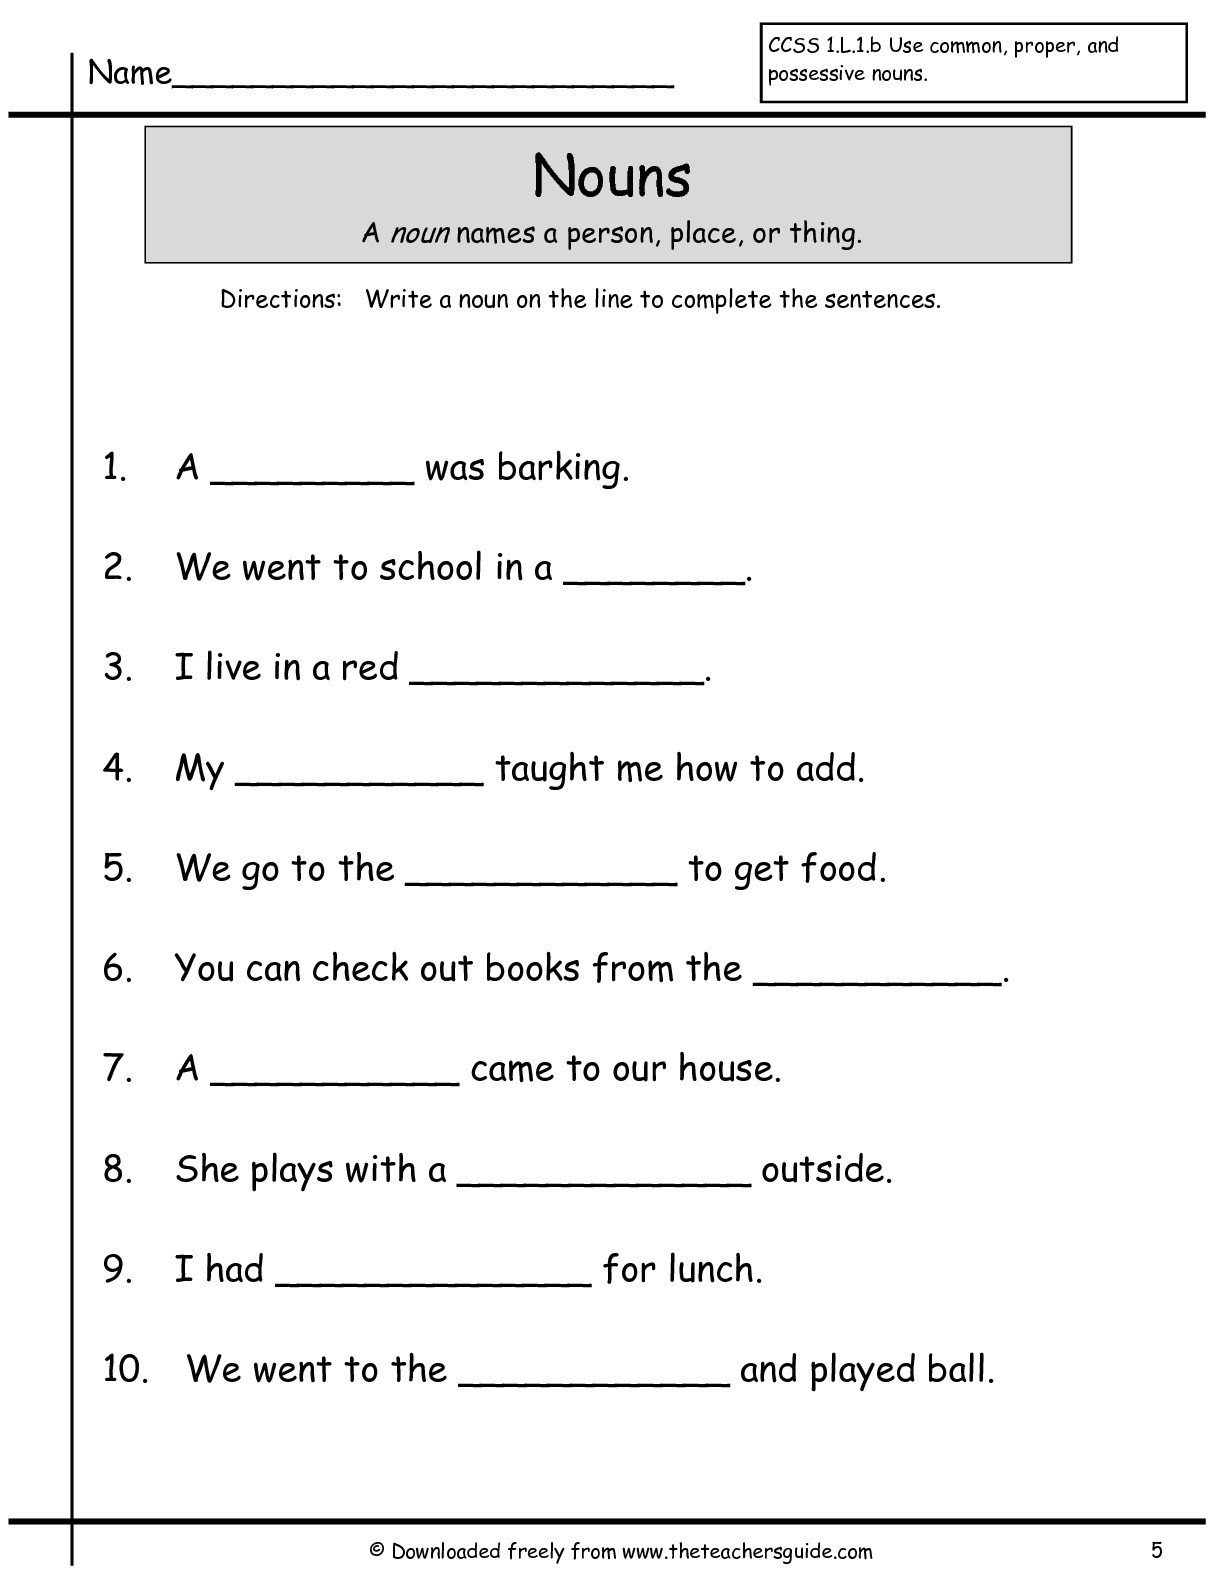 Social Studies Worksheet 1st Grade social Stu First Grade Worksheets Printable and Stu S 1st